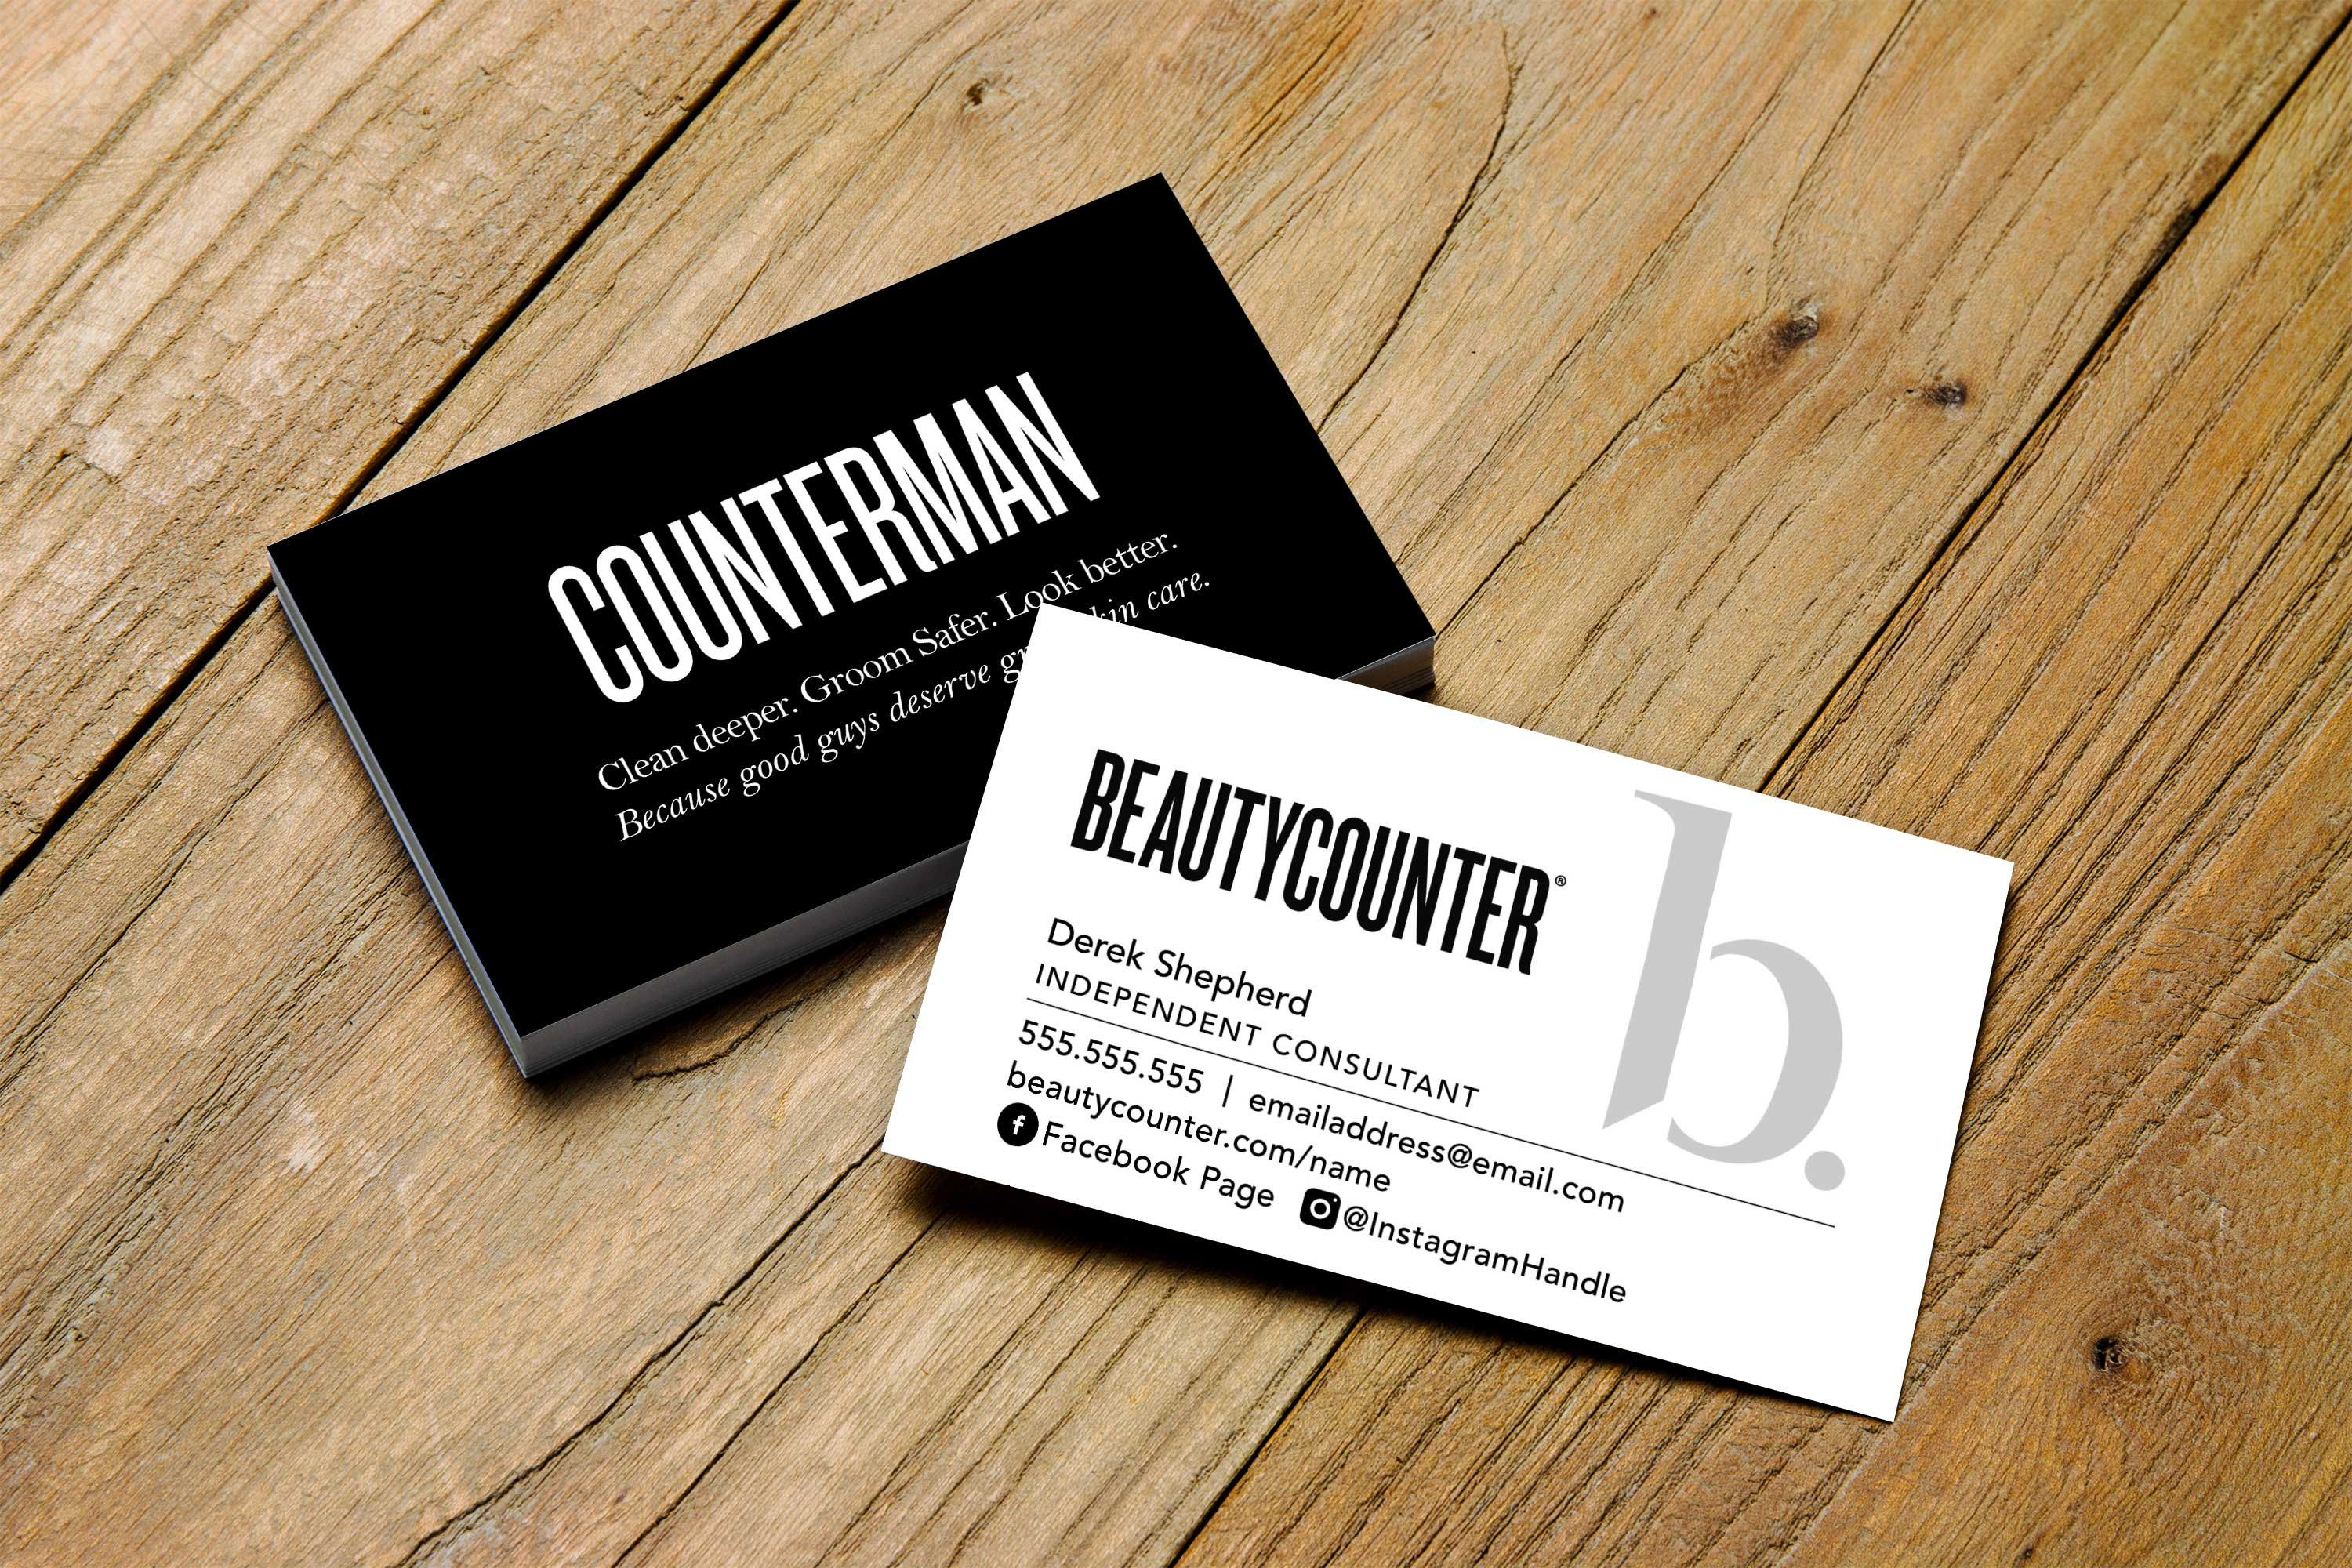 Counterman Business Card Beautycounter Printable Etsy Printable Personalized Double Sided Business Cards Referral Cards